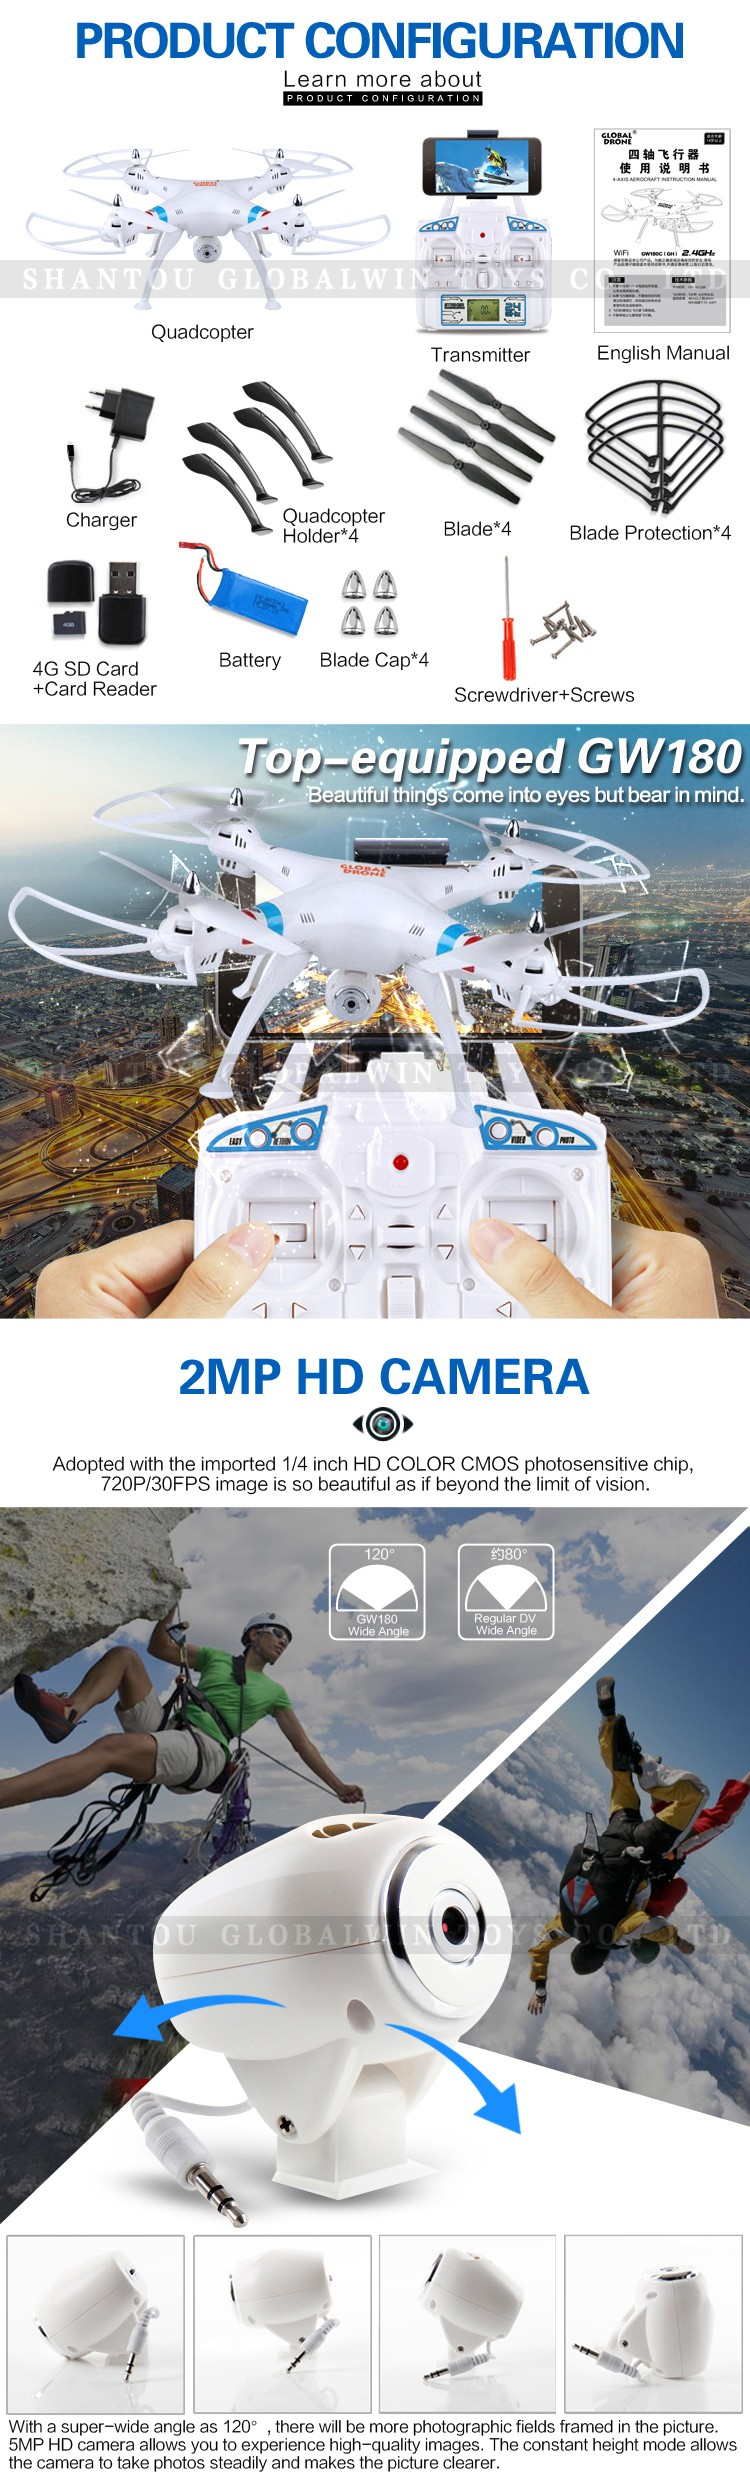 New arrived RC FPV Drone GW180HC/ GW180HW ,6 Gyro Stable Quadcopter with camera One Key Return and One Key Up & Down Function